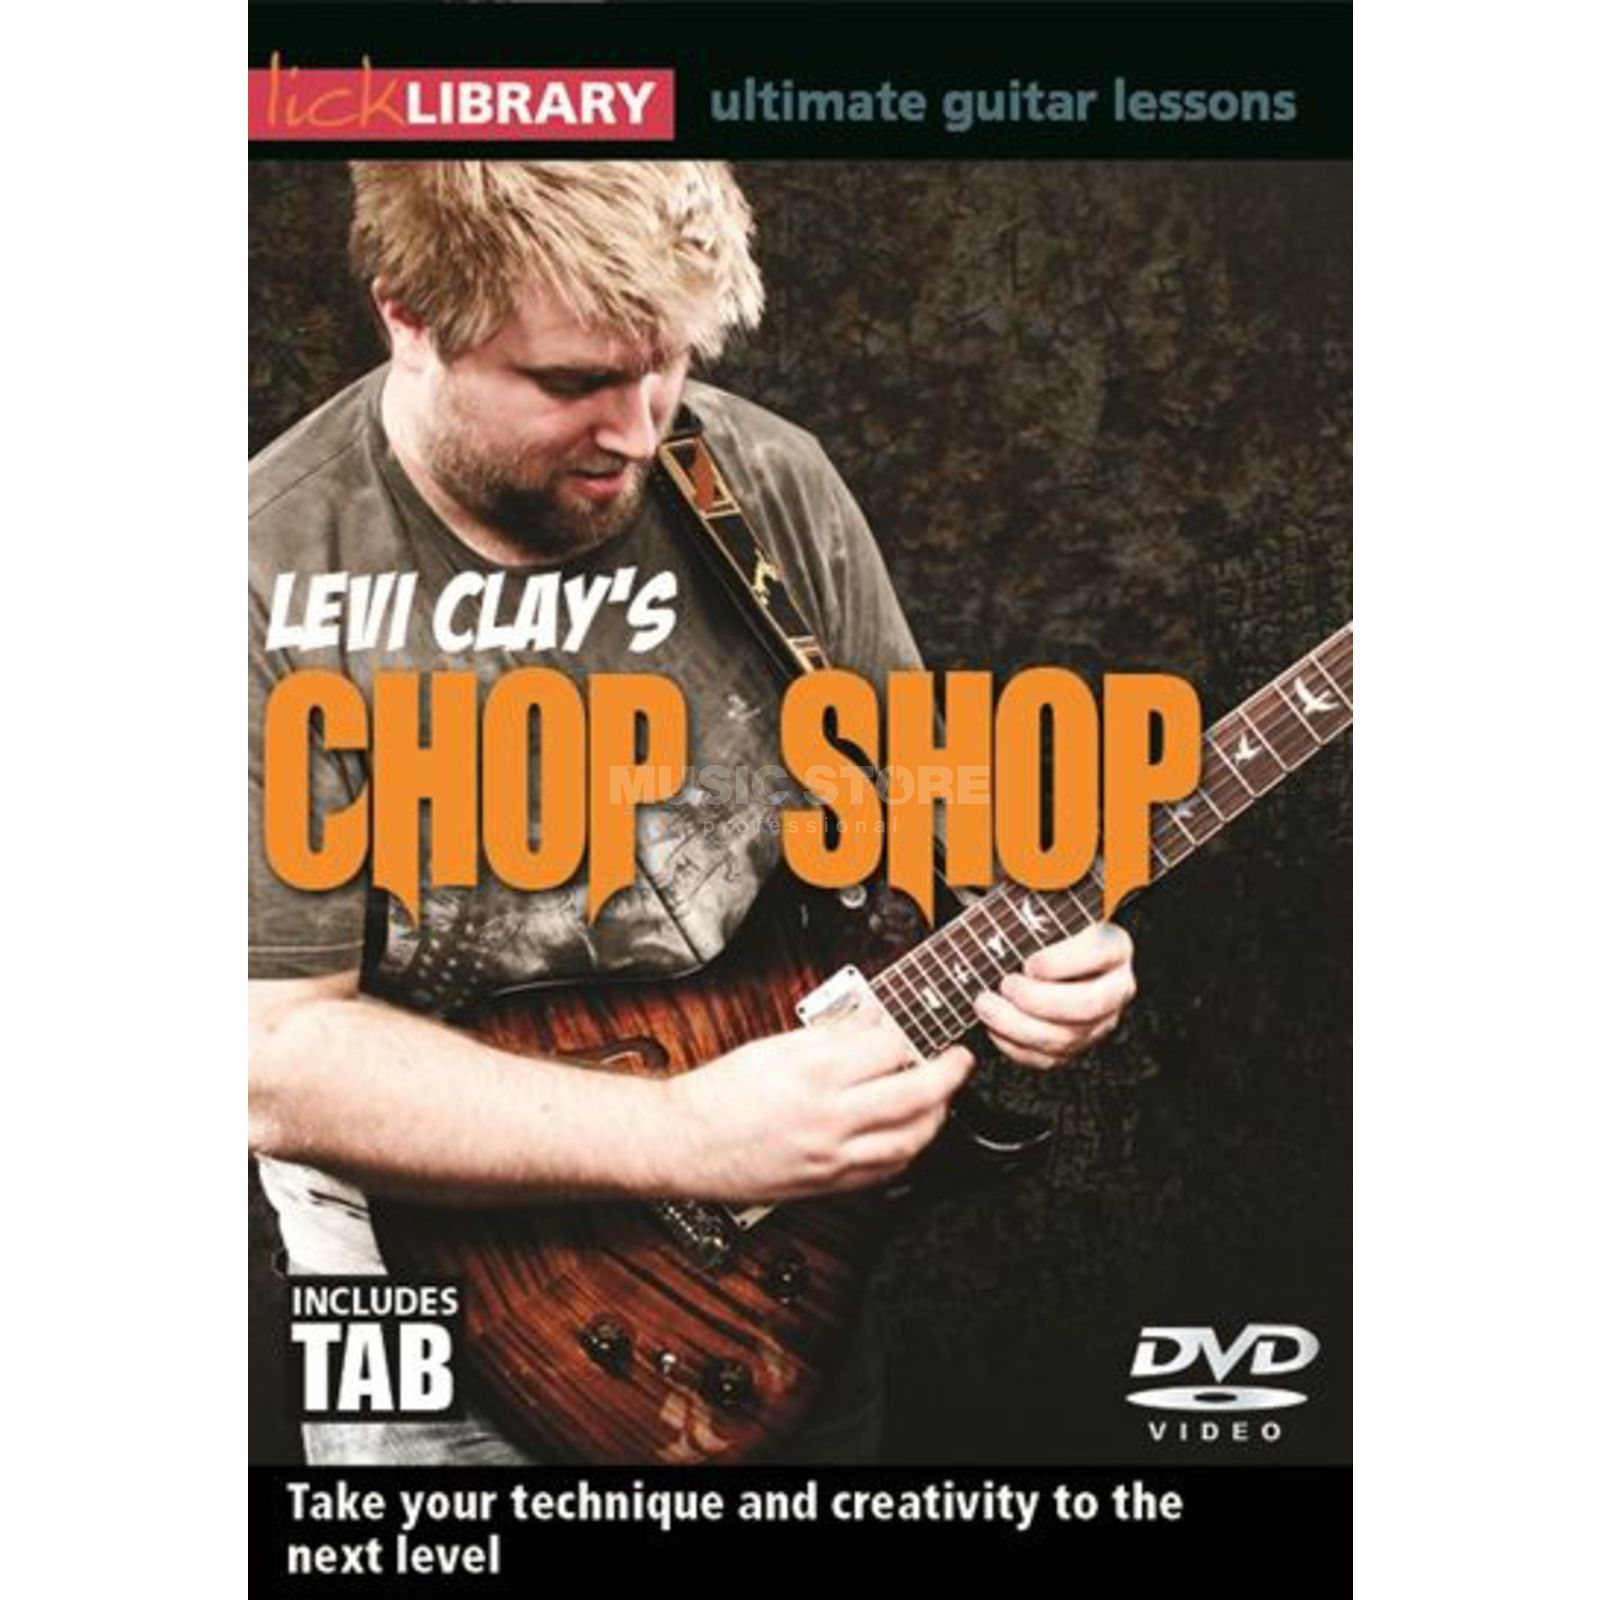 Roadrock International Lick Library: Levi Clay's Chop Shop DVD Produktbillede